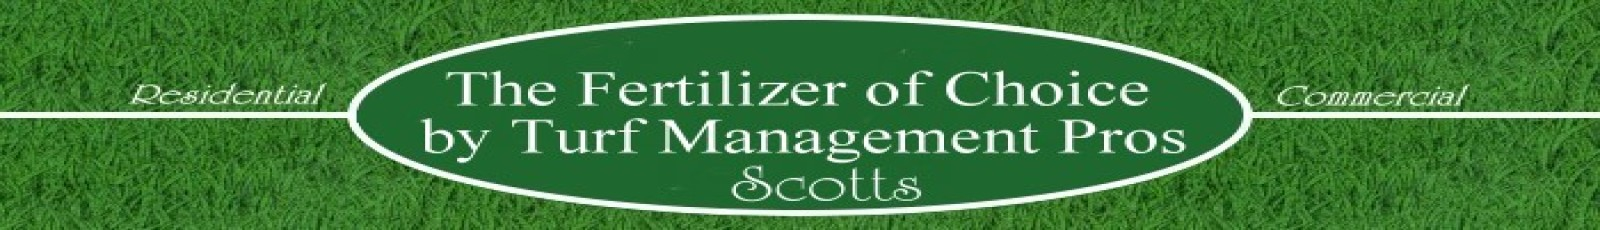 Scotts Fertilizers or Scotts Lawn Fertilizers